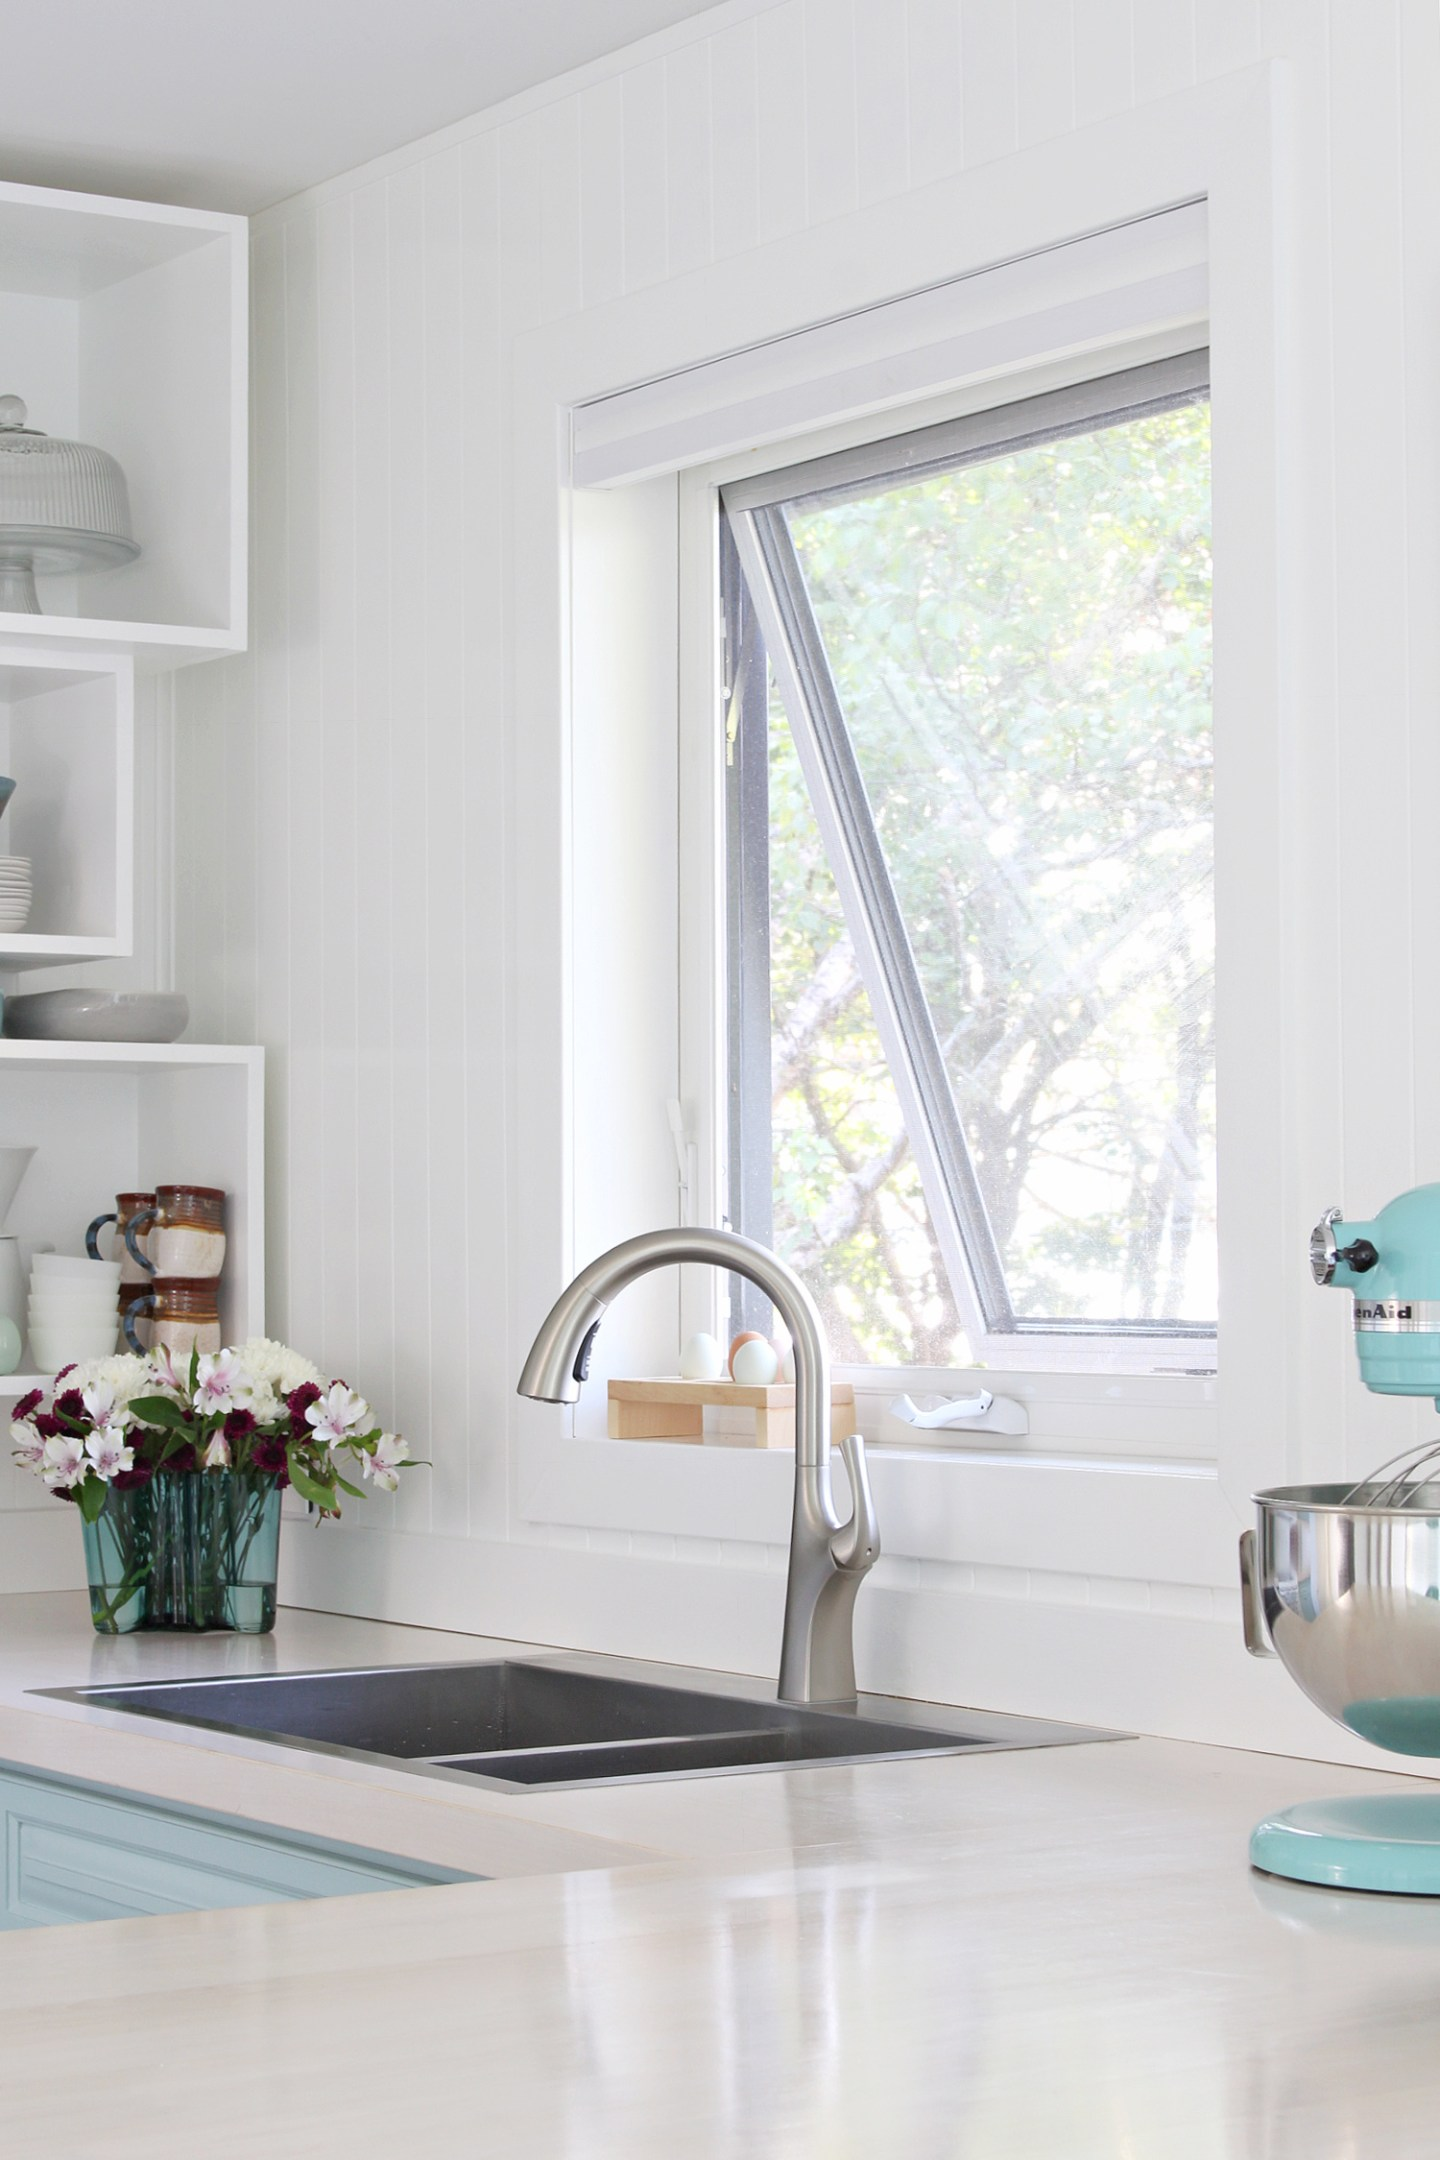 Kitchen Faucet That is Easy to Install